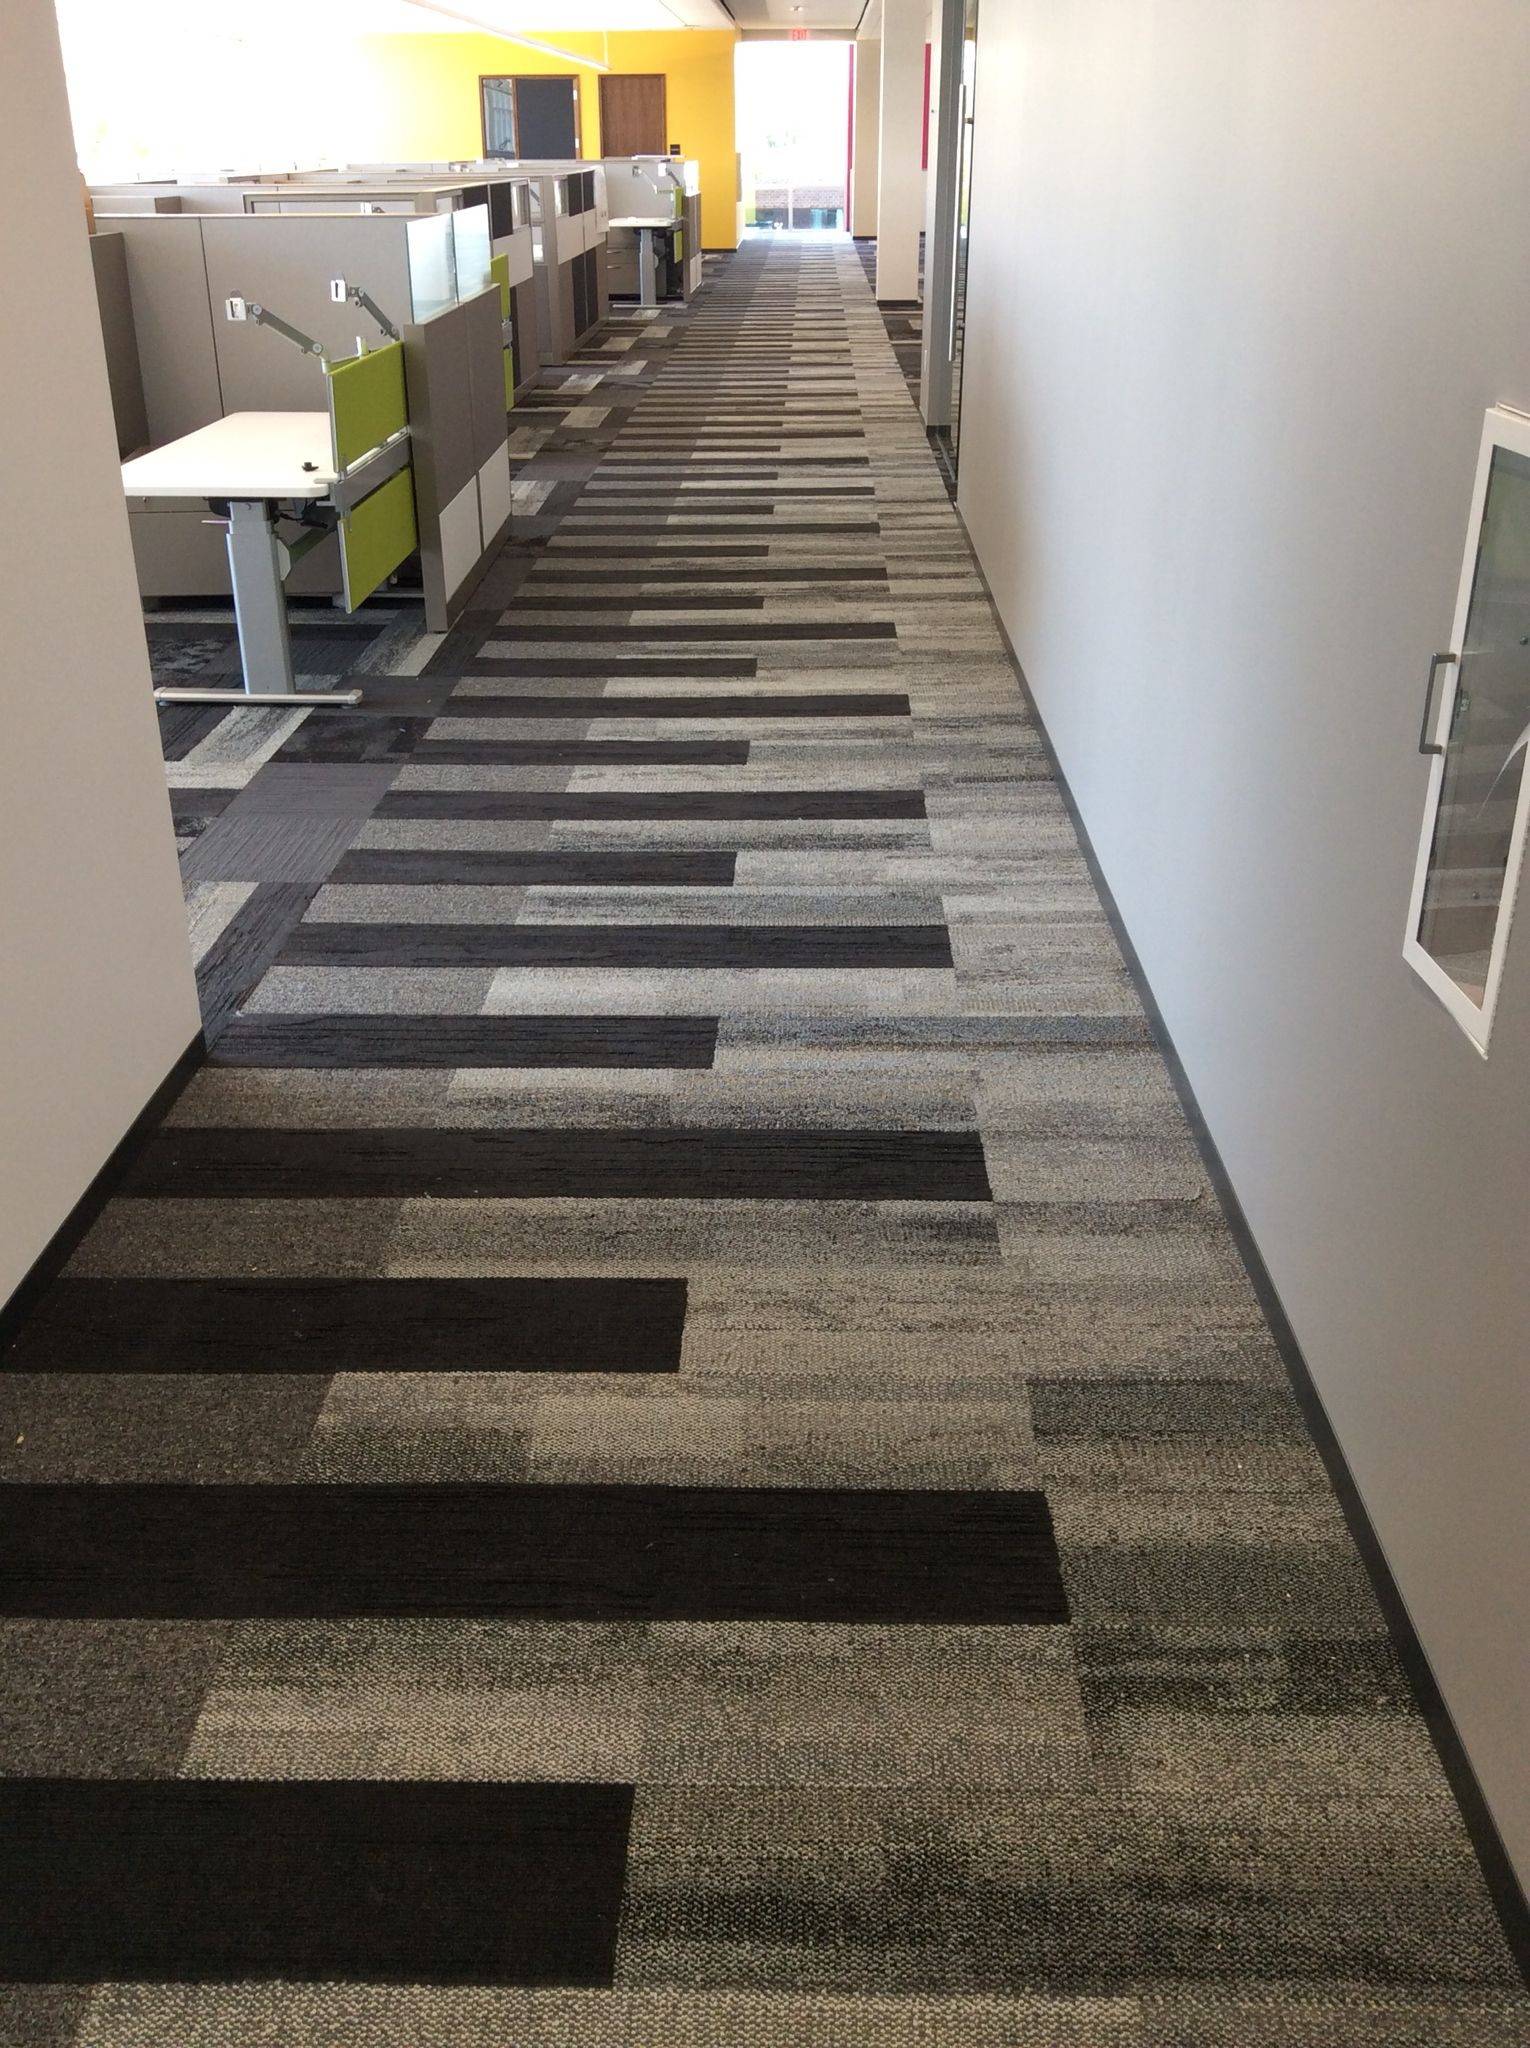 Interface Piano Key Install (With images) | Carpet tiles ...